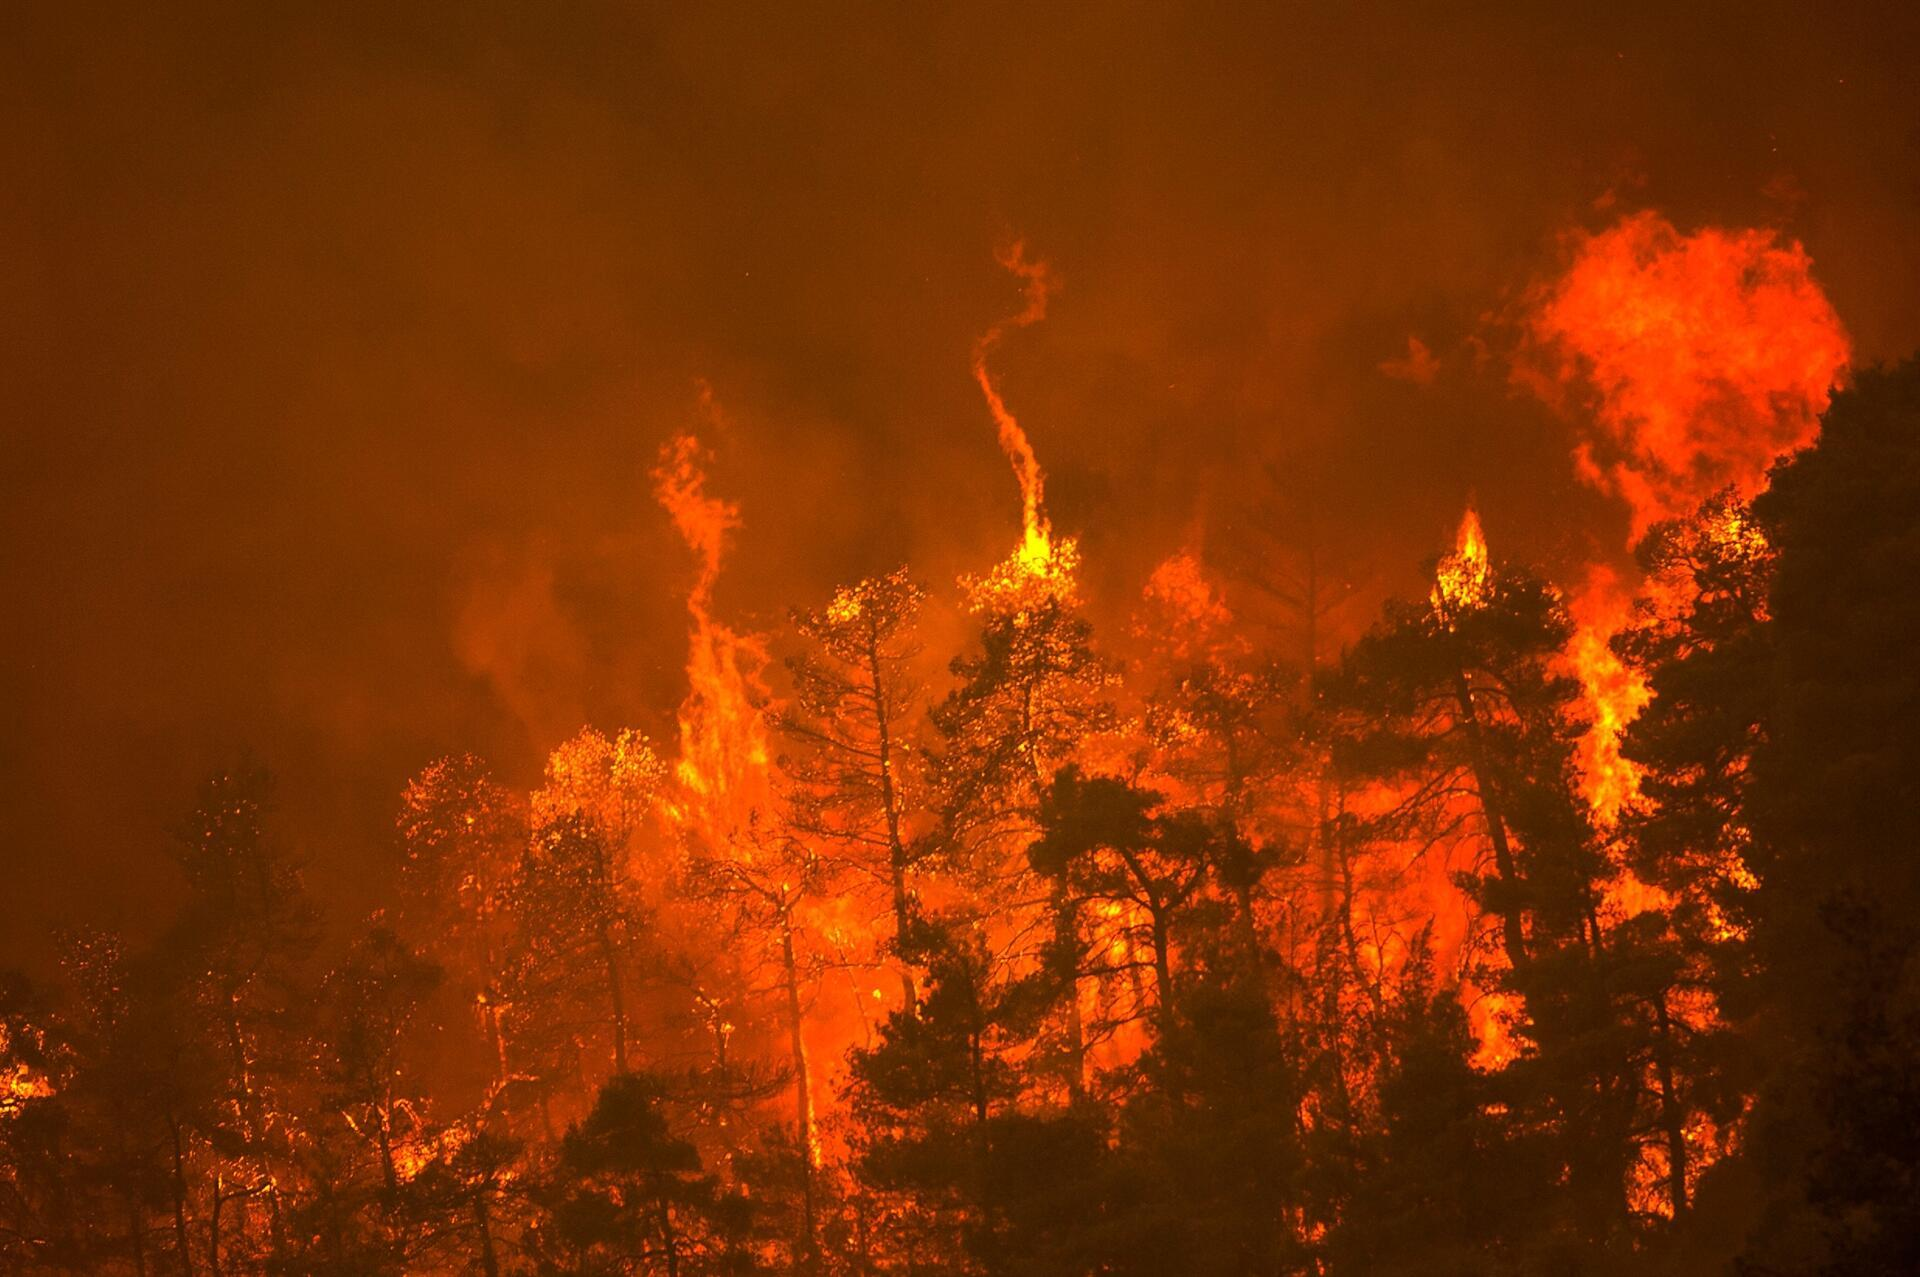 Wildfires rampage in Greek forests, cut large island in half - World News